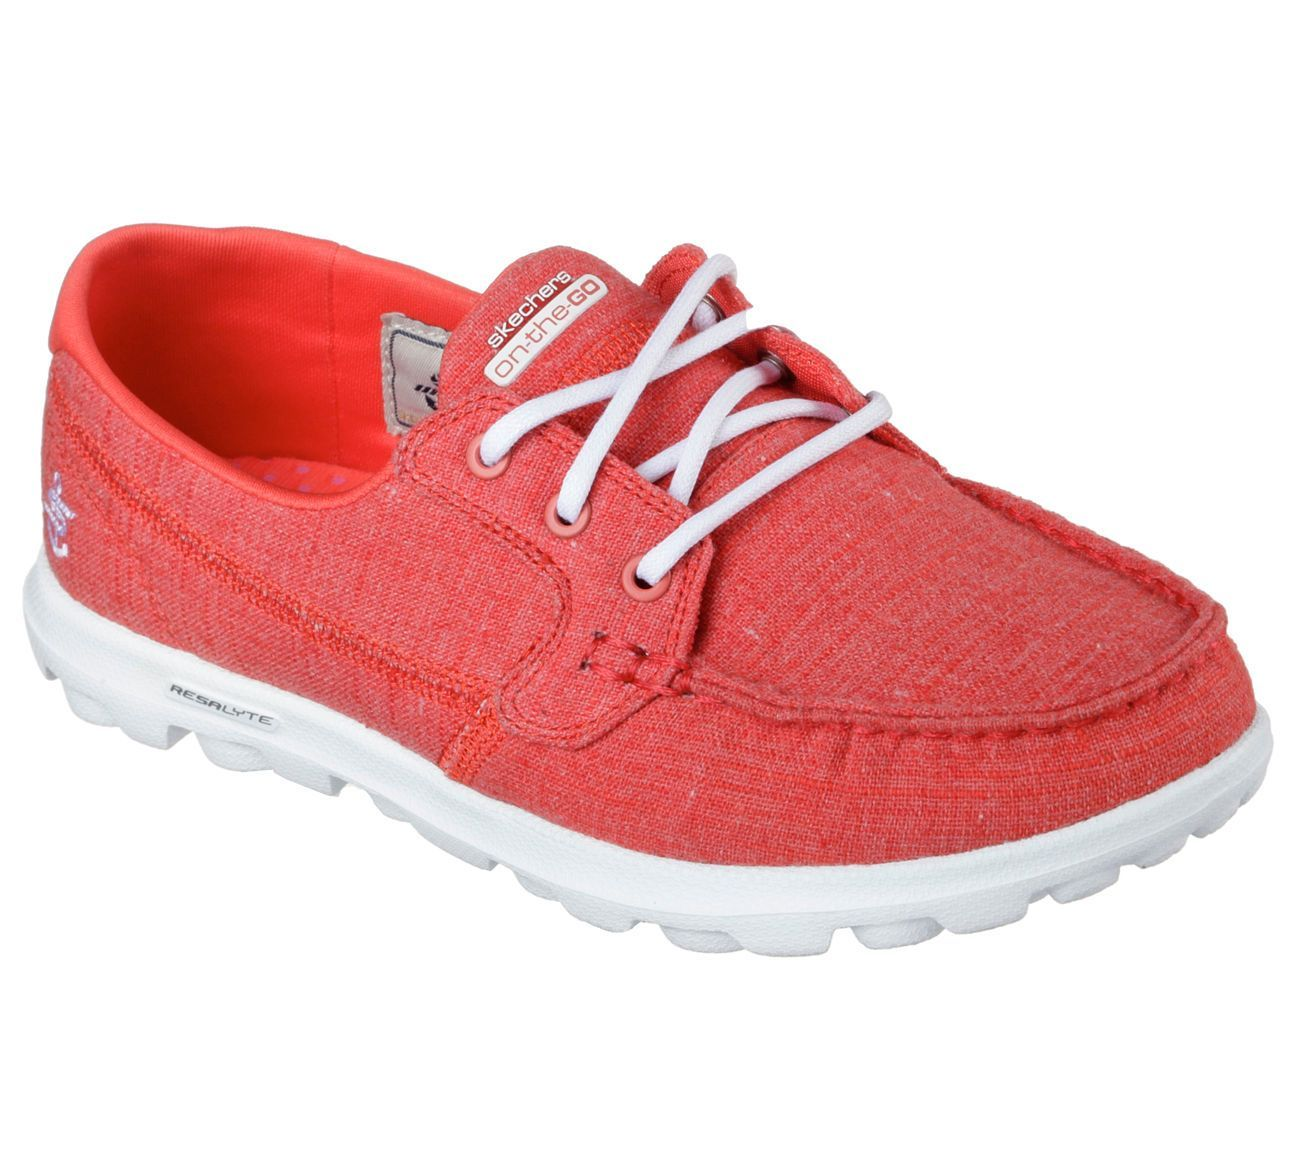 Details about 13841 Red Skechers Shoes On The Go Walk Women